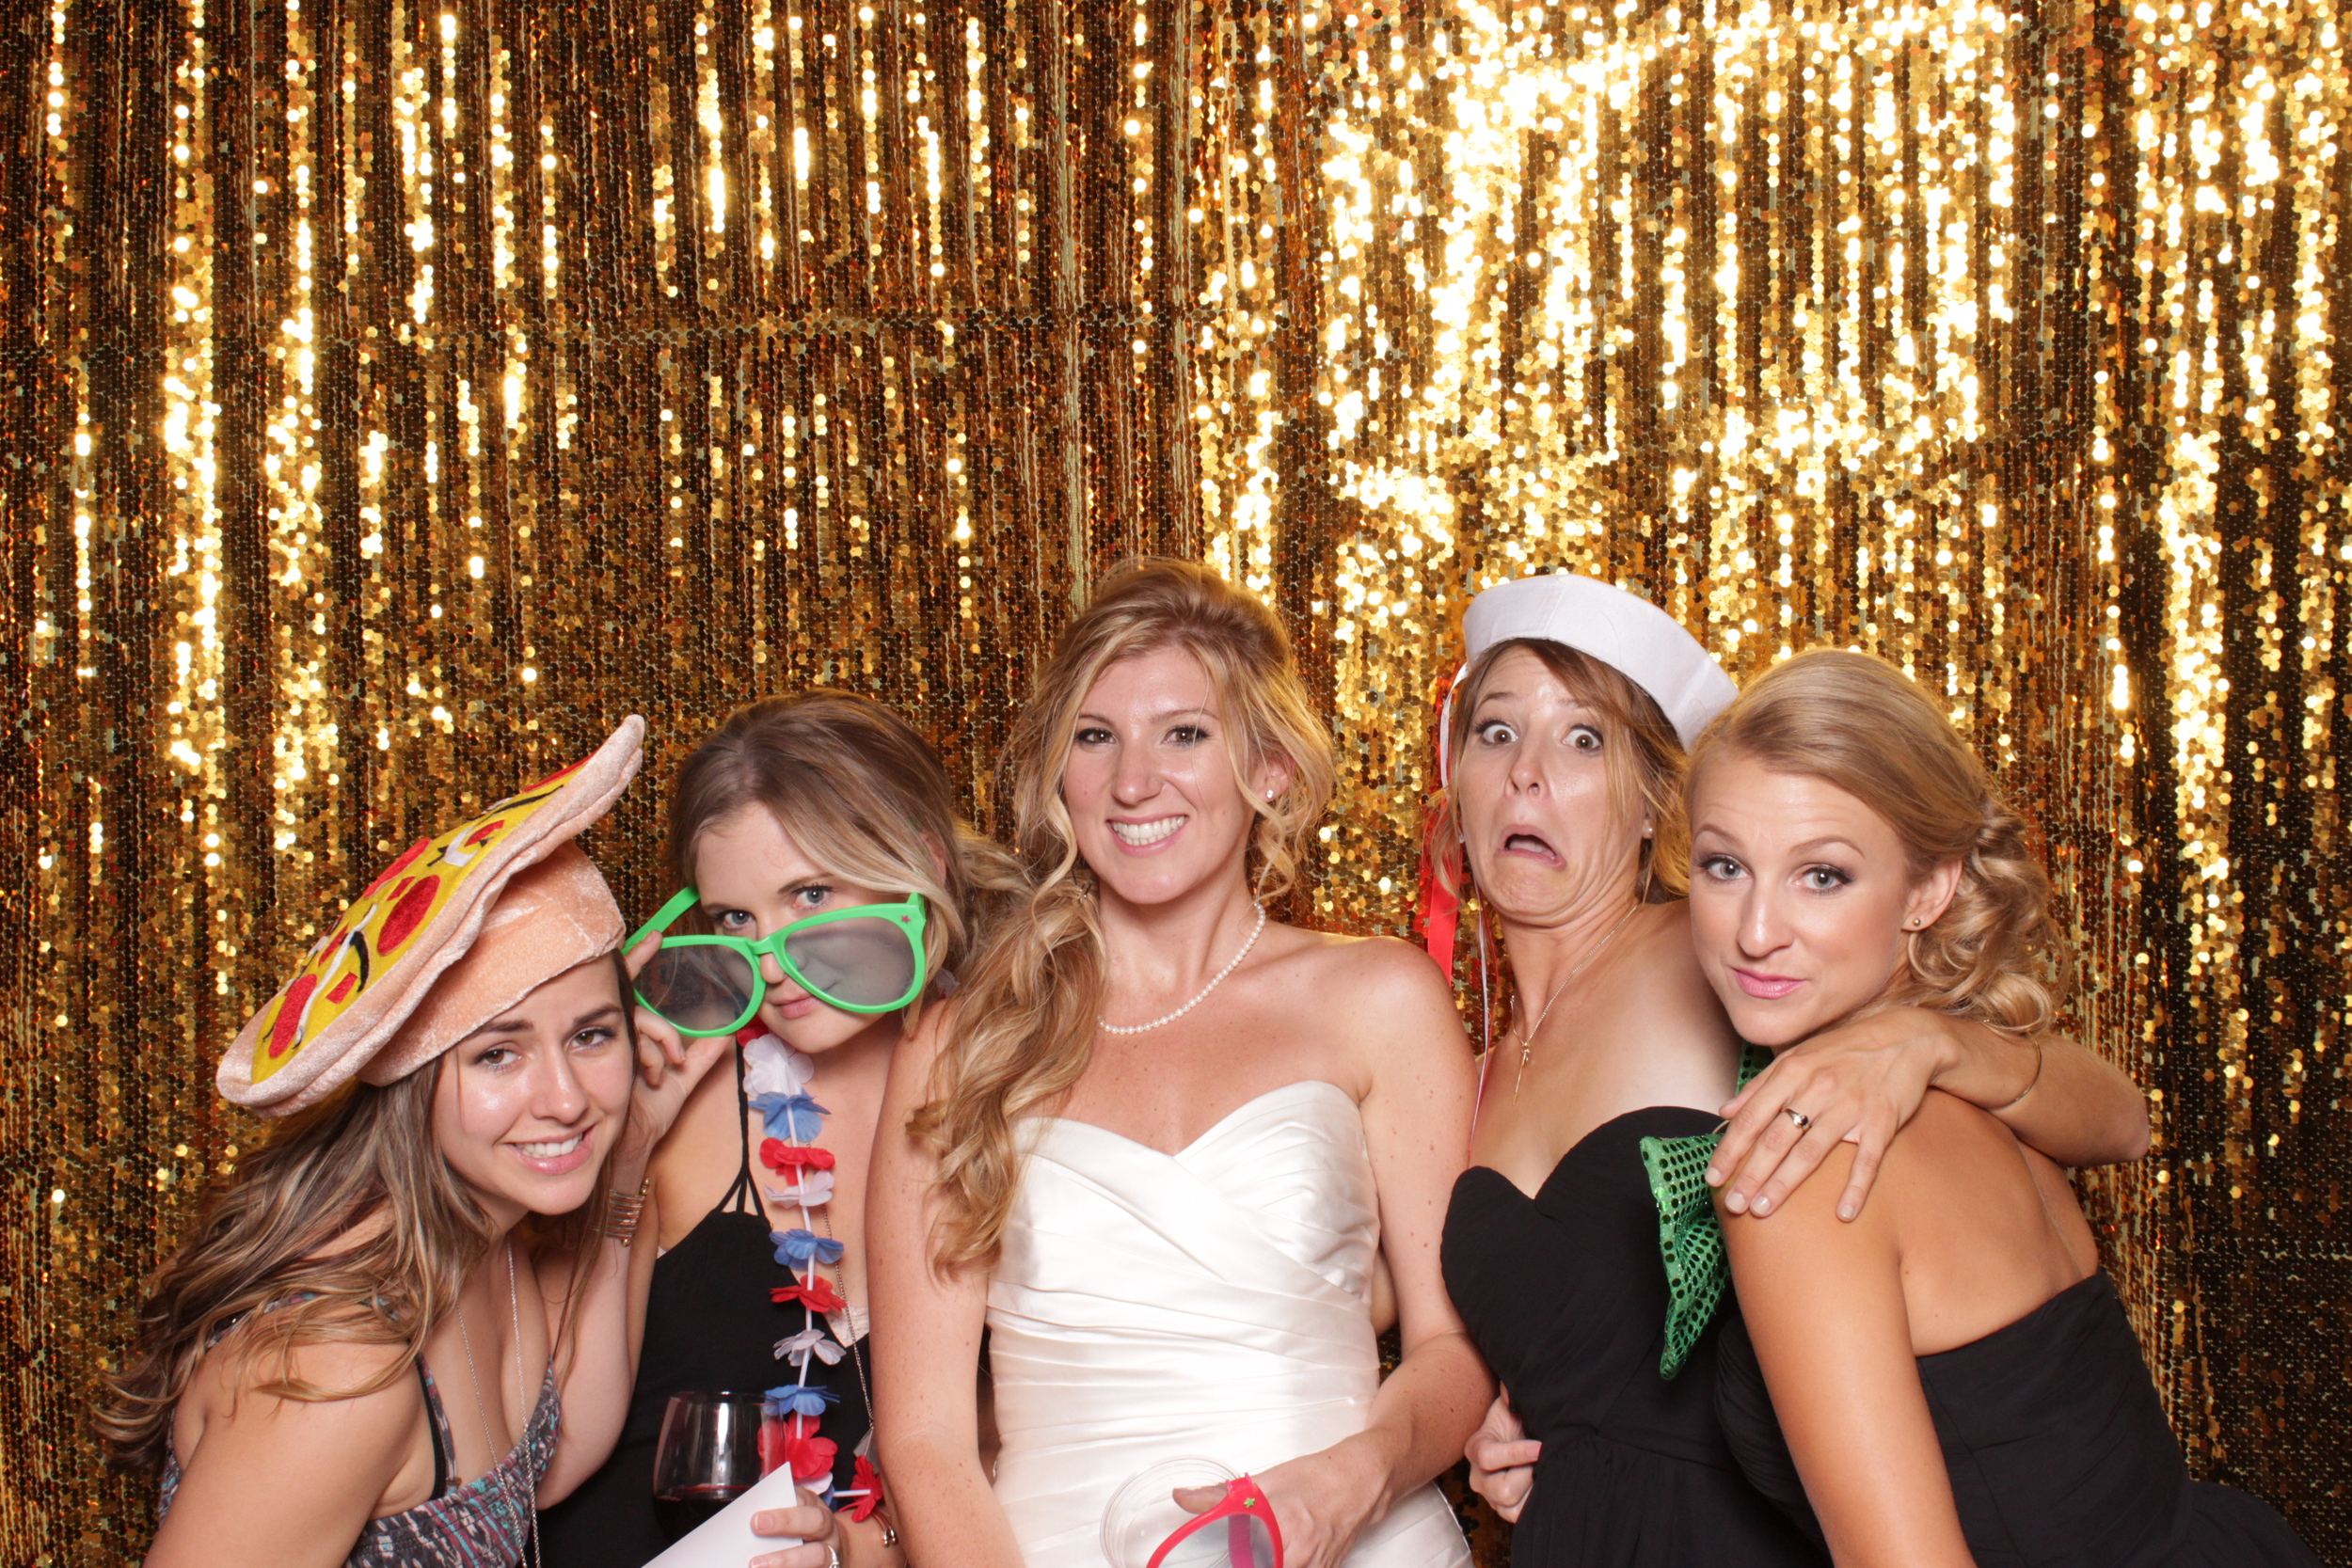 chico-photo-booth-rental-double-weddingIMG_0200.JPG